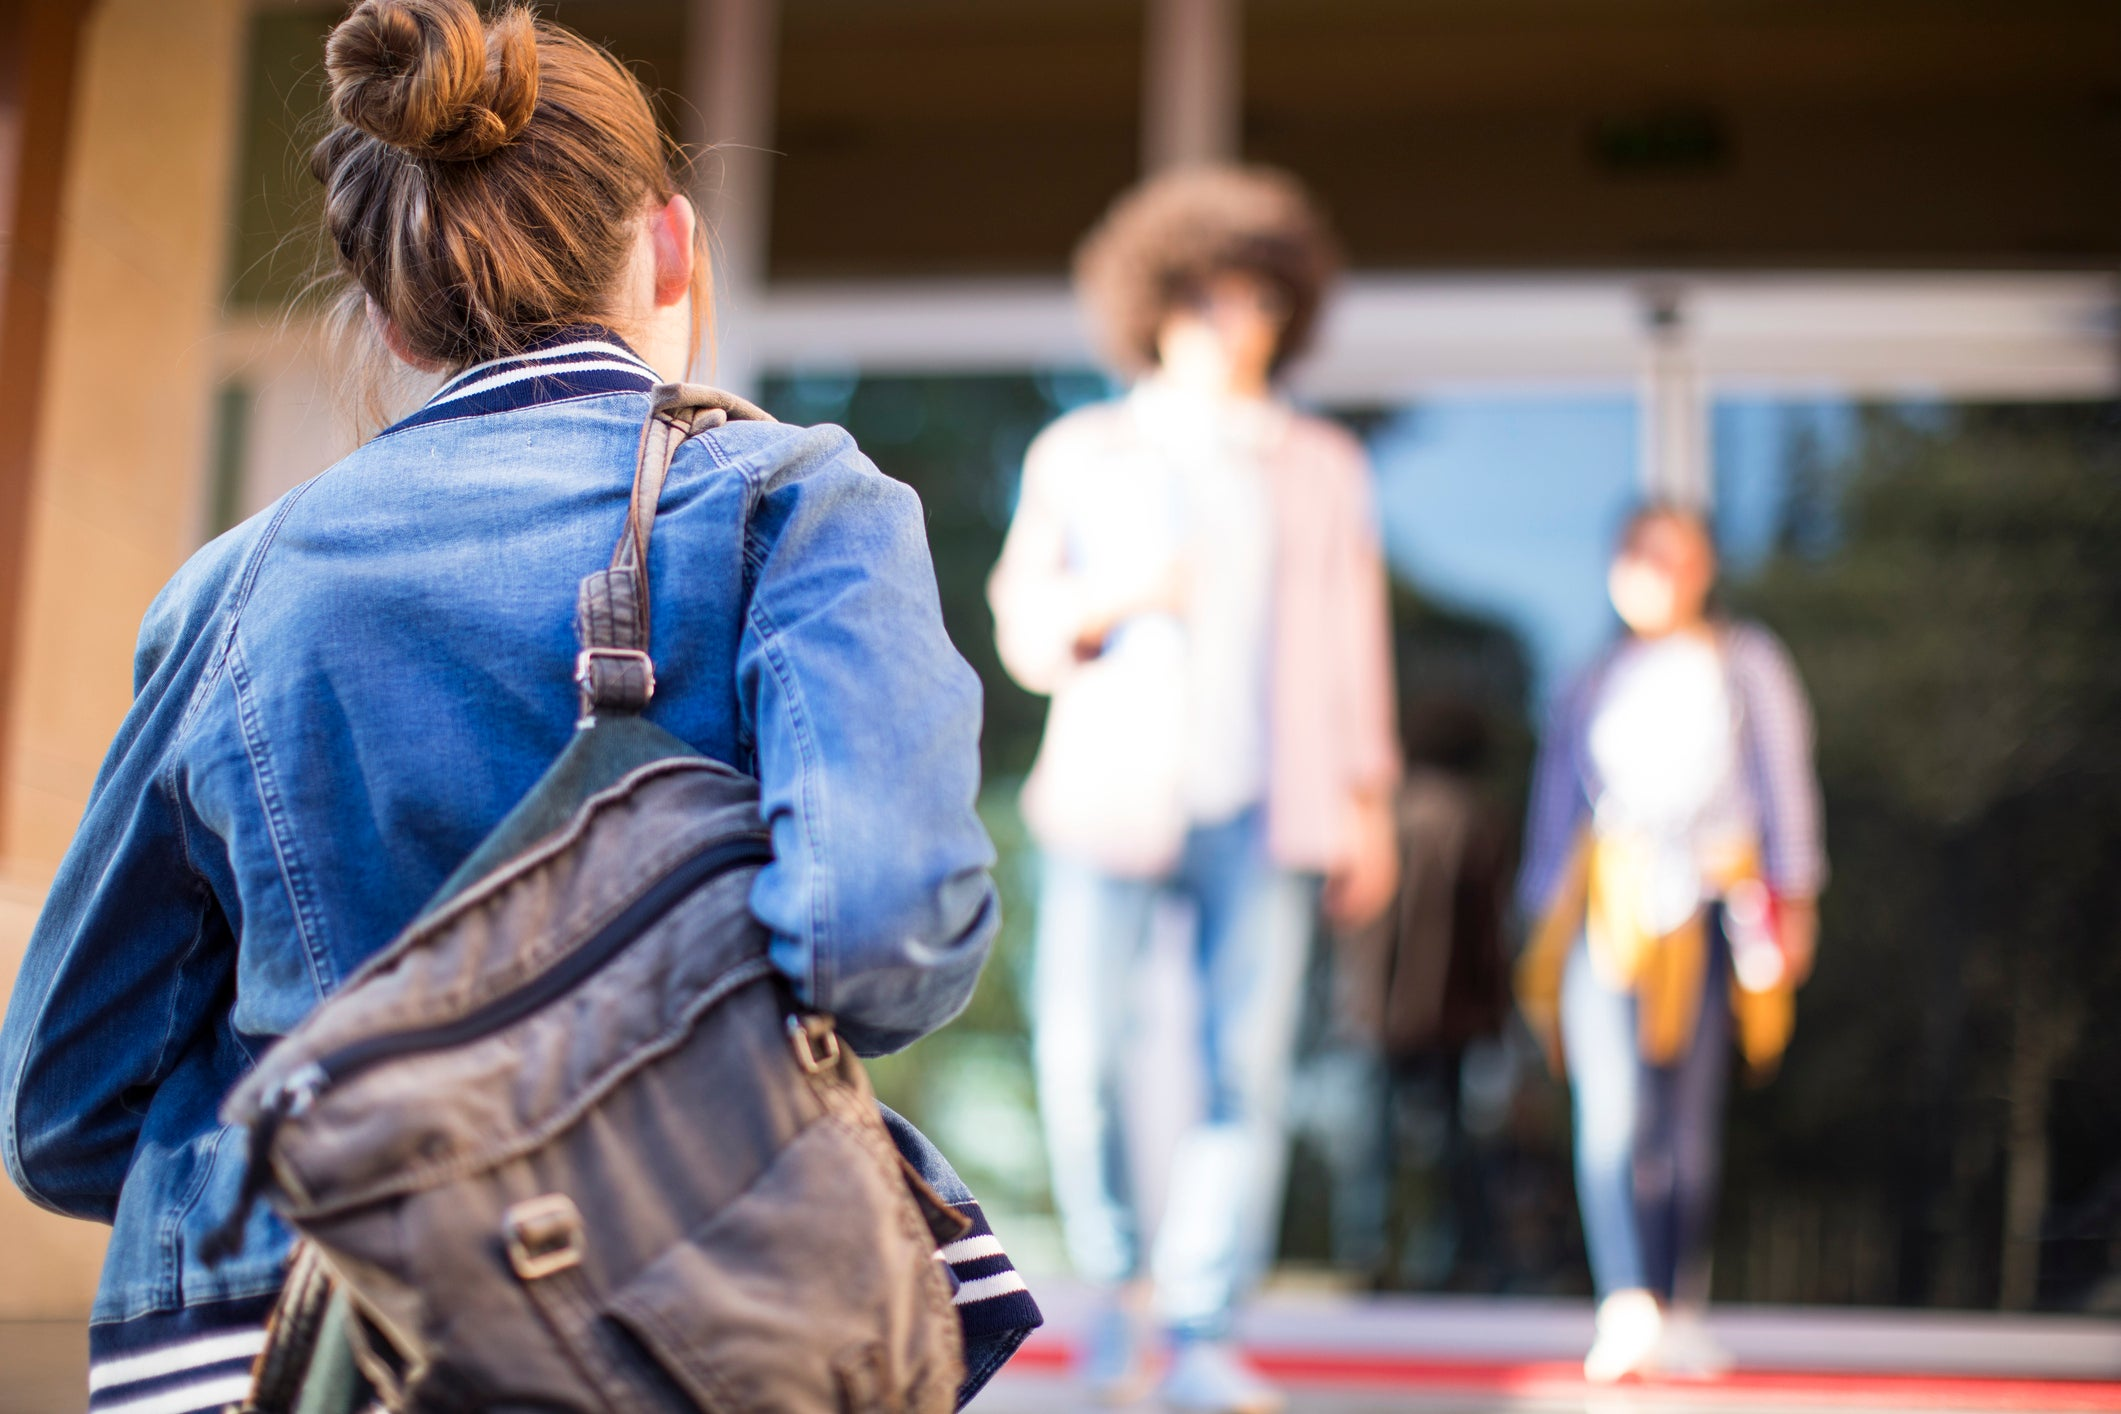 Female Student Walking Into School With Backpack Over Her Shoulder